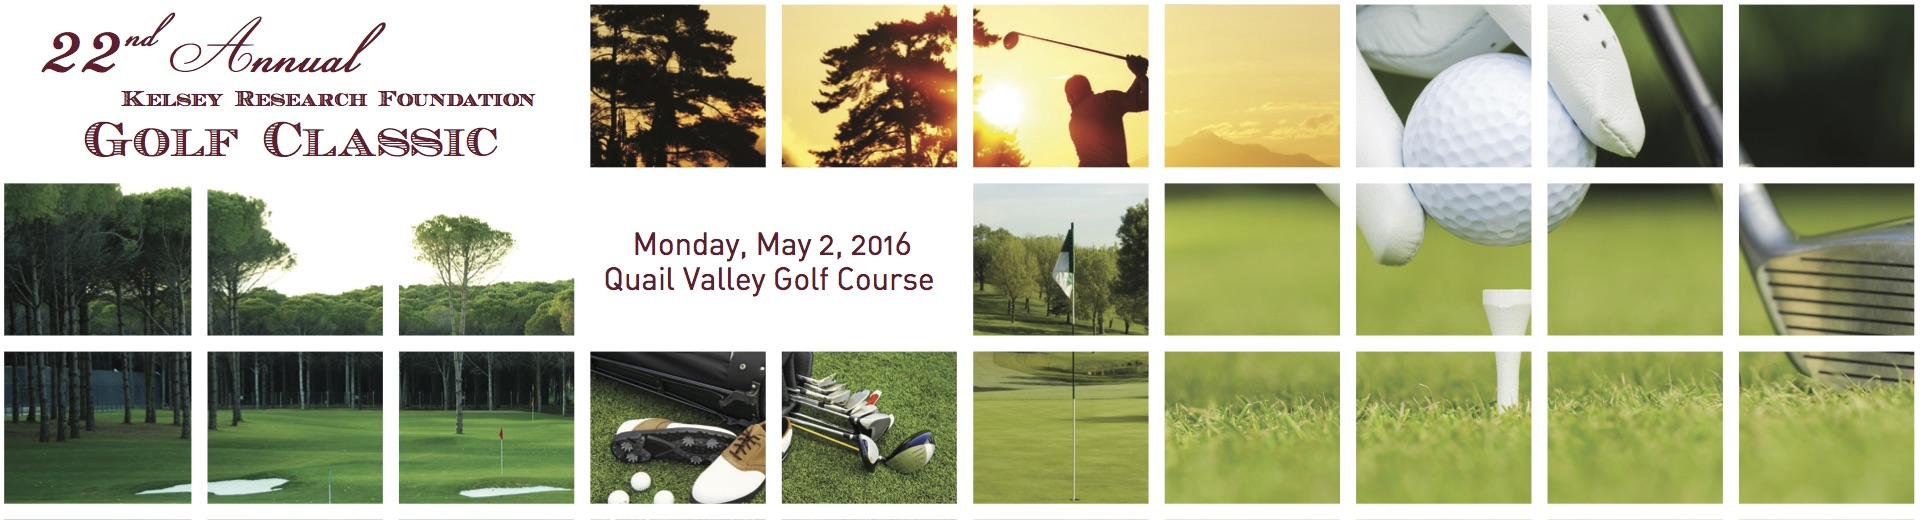 The 23rd Annual Kelsey Research Foundation Golf Classic